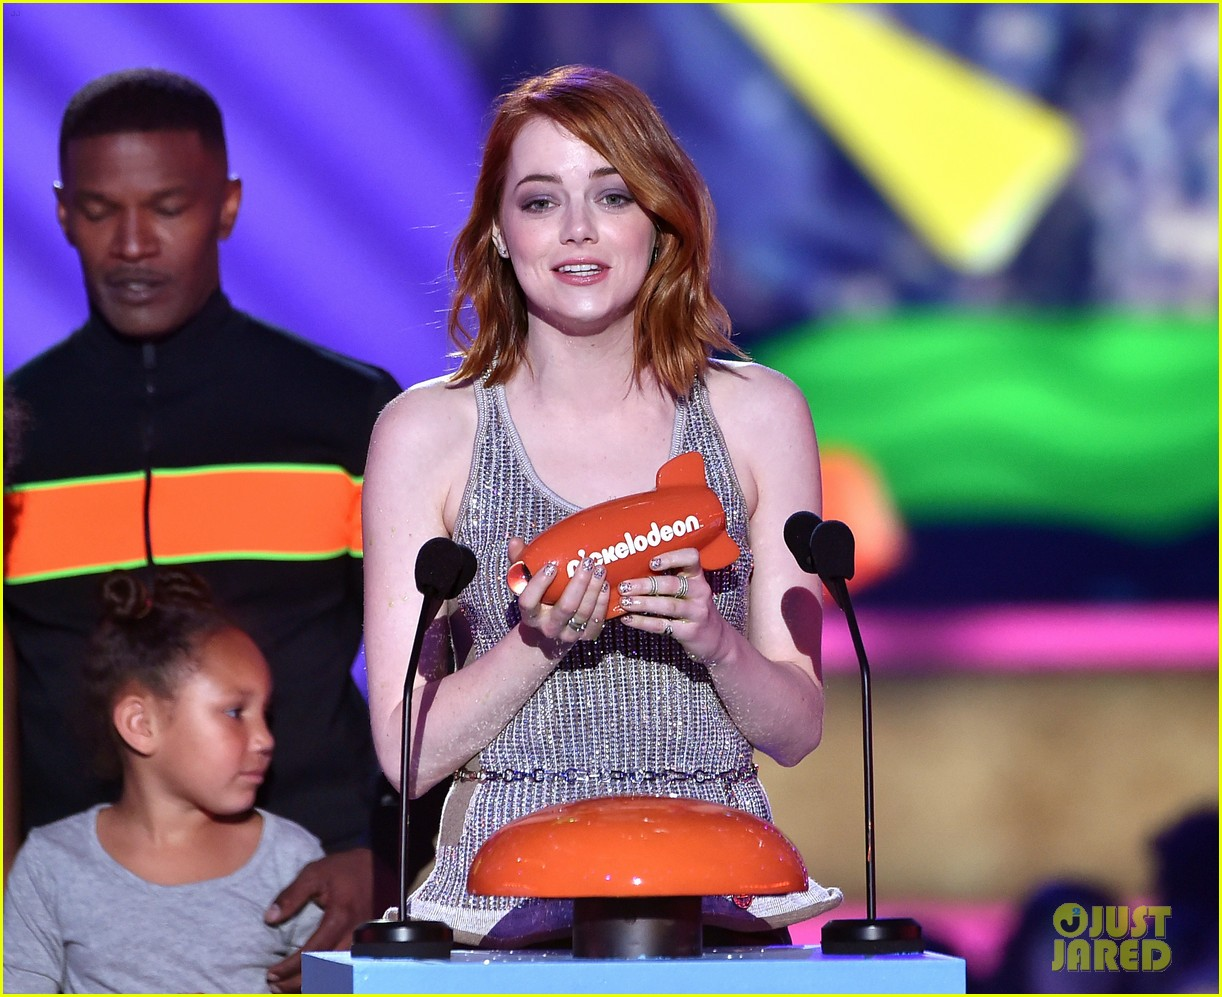 http://cdn03.cdn.justjared.com/wp-content/uploads/2015/03/stone-kcas/emma-stone-celebrates-her-win-at-the-kcas-2015-09.jpg